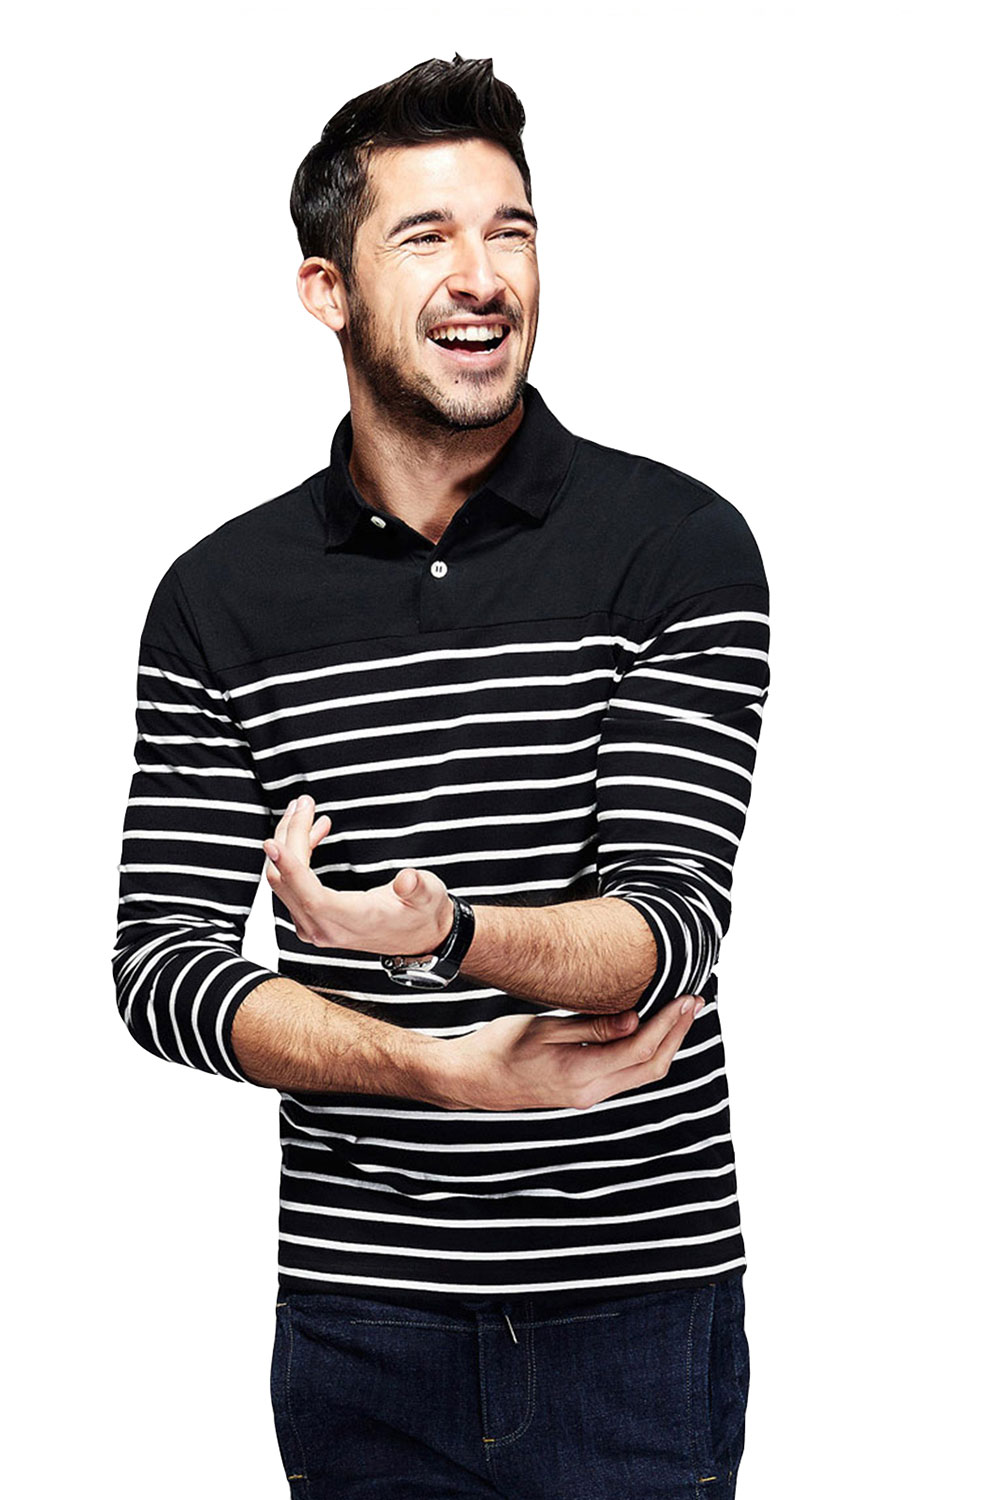 bae78160a59 fanideaz Branded Men s Full Sleeve Cotton Black and White Striped Polo T  Shirt